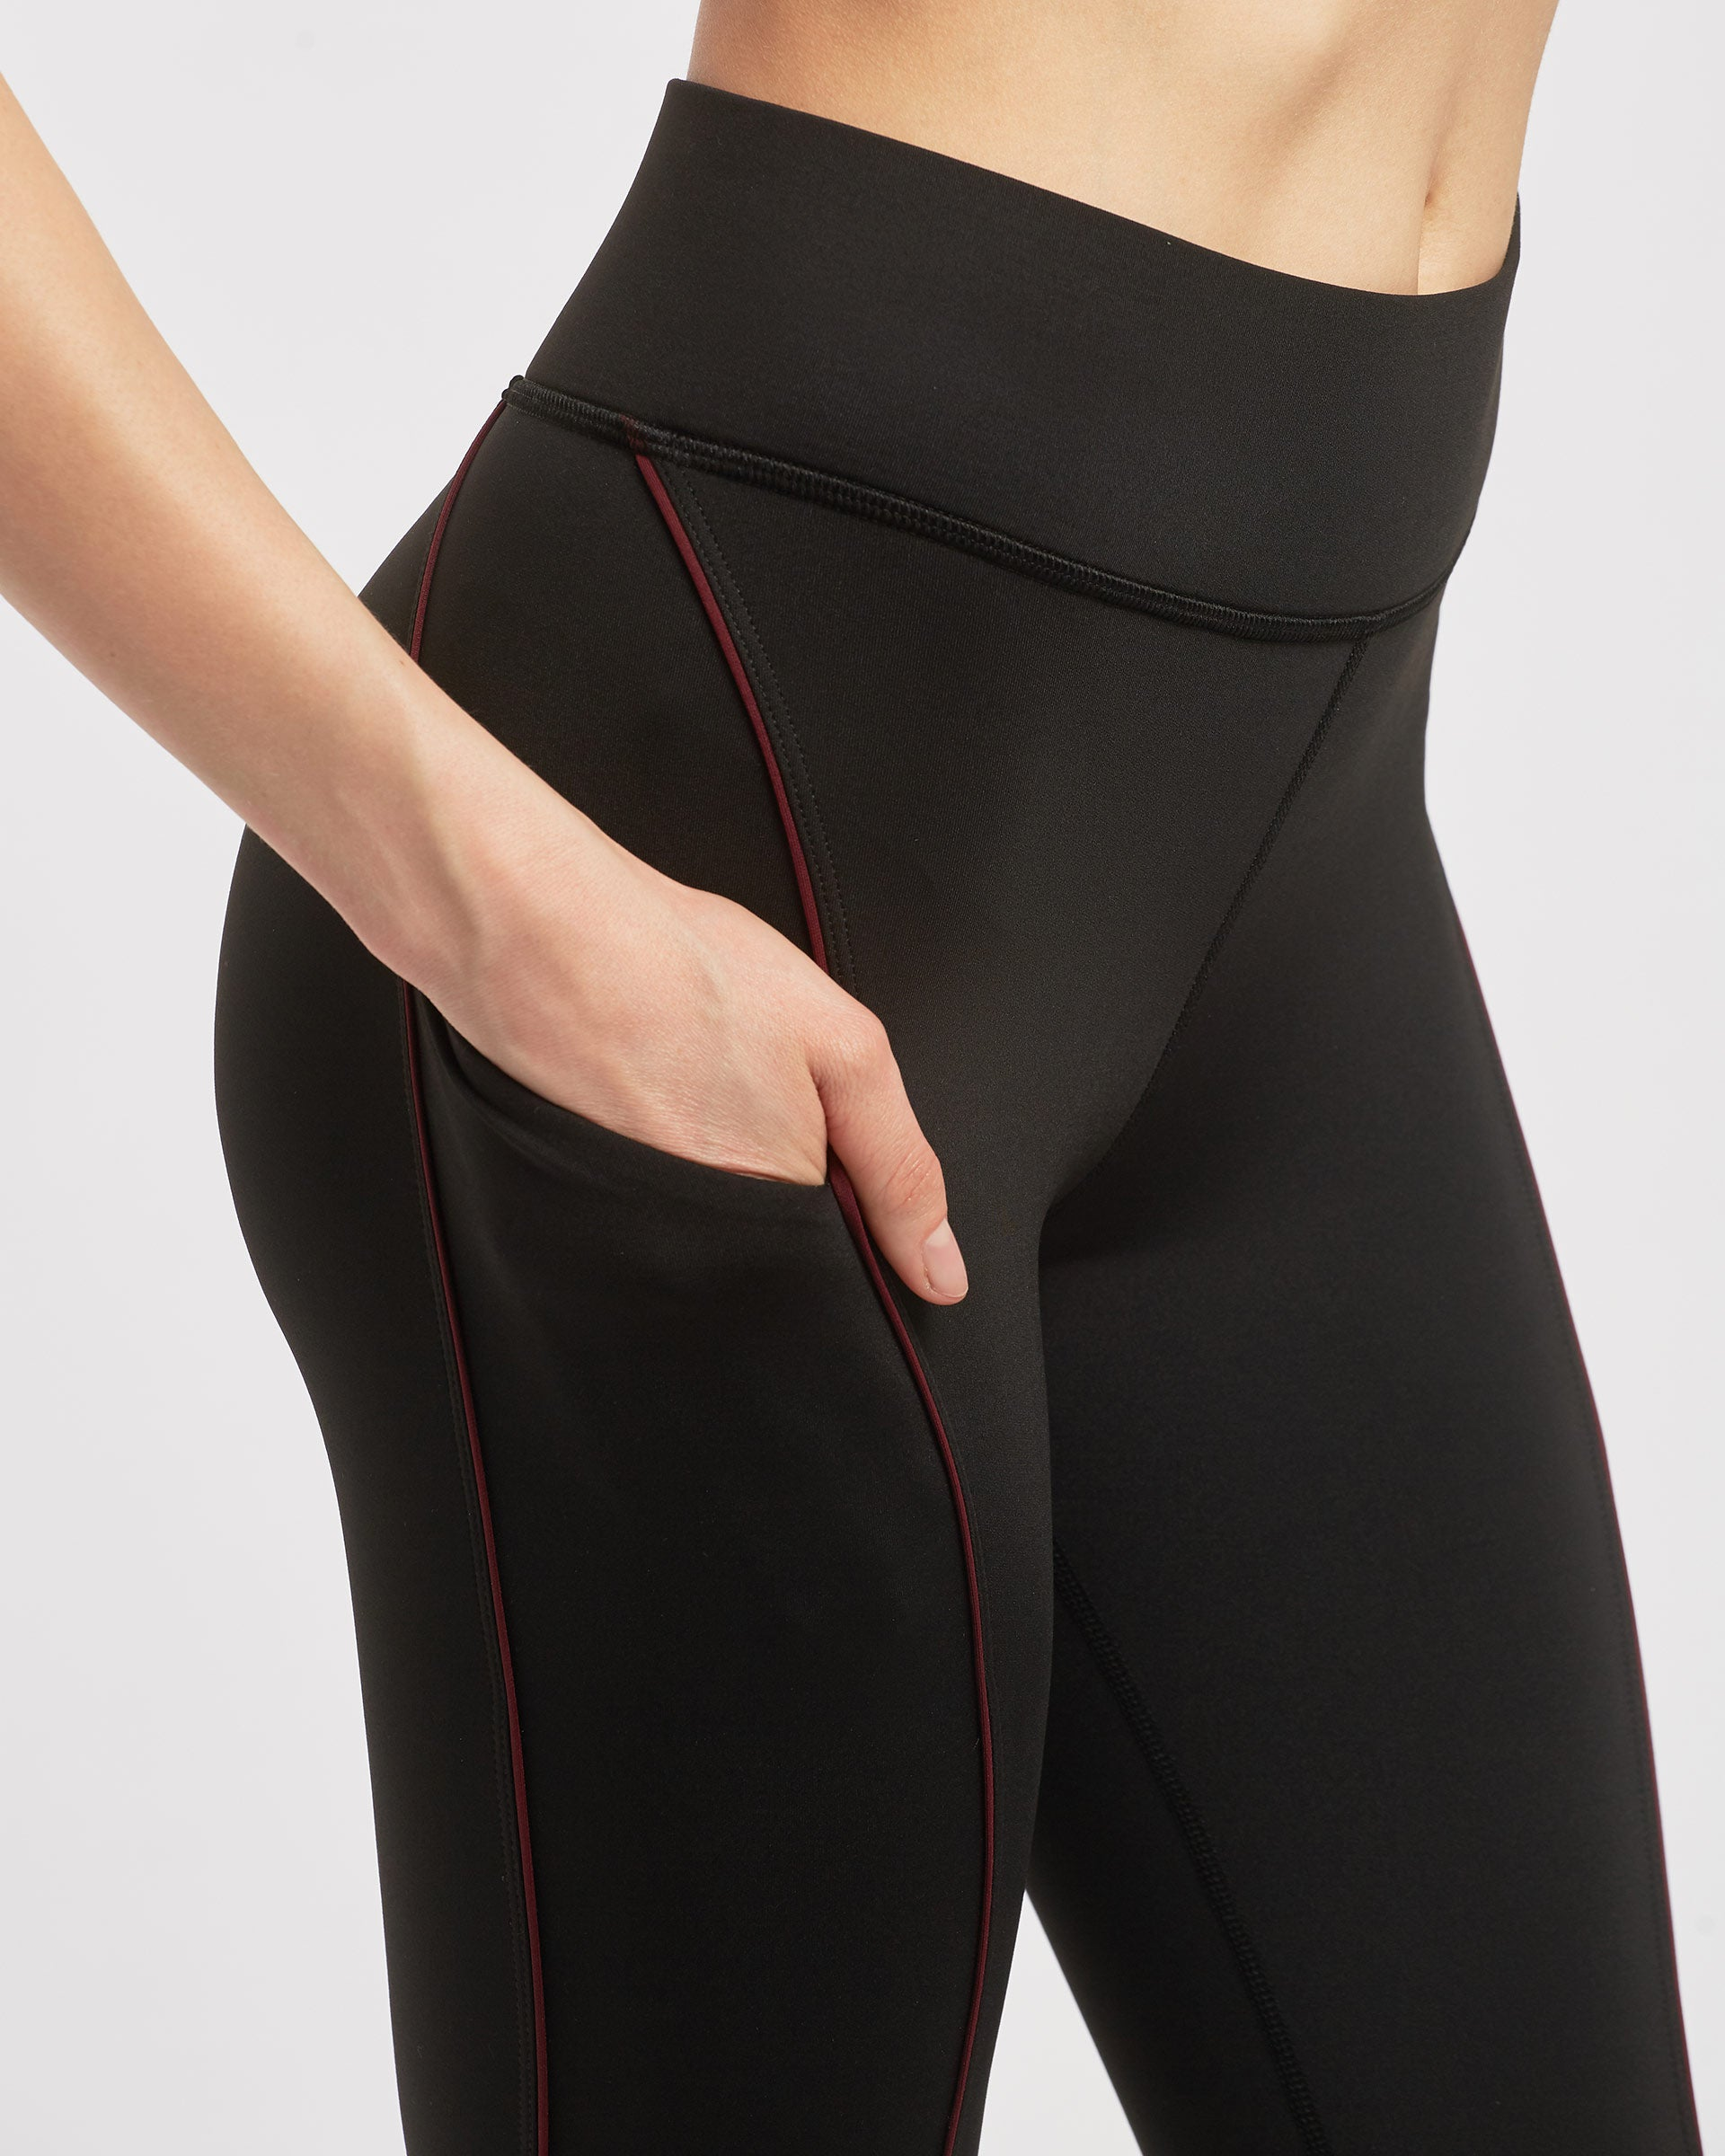 Linear Pocket Legging - Black/Wine